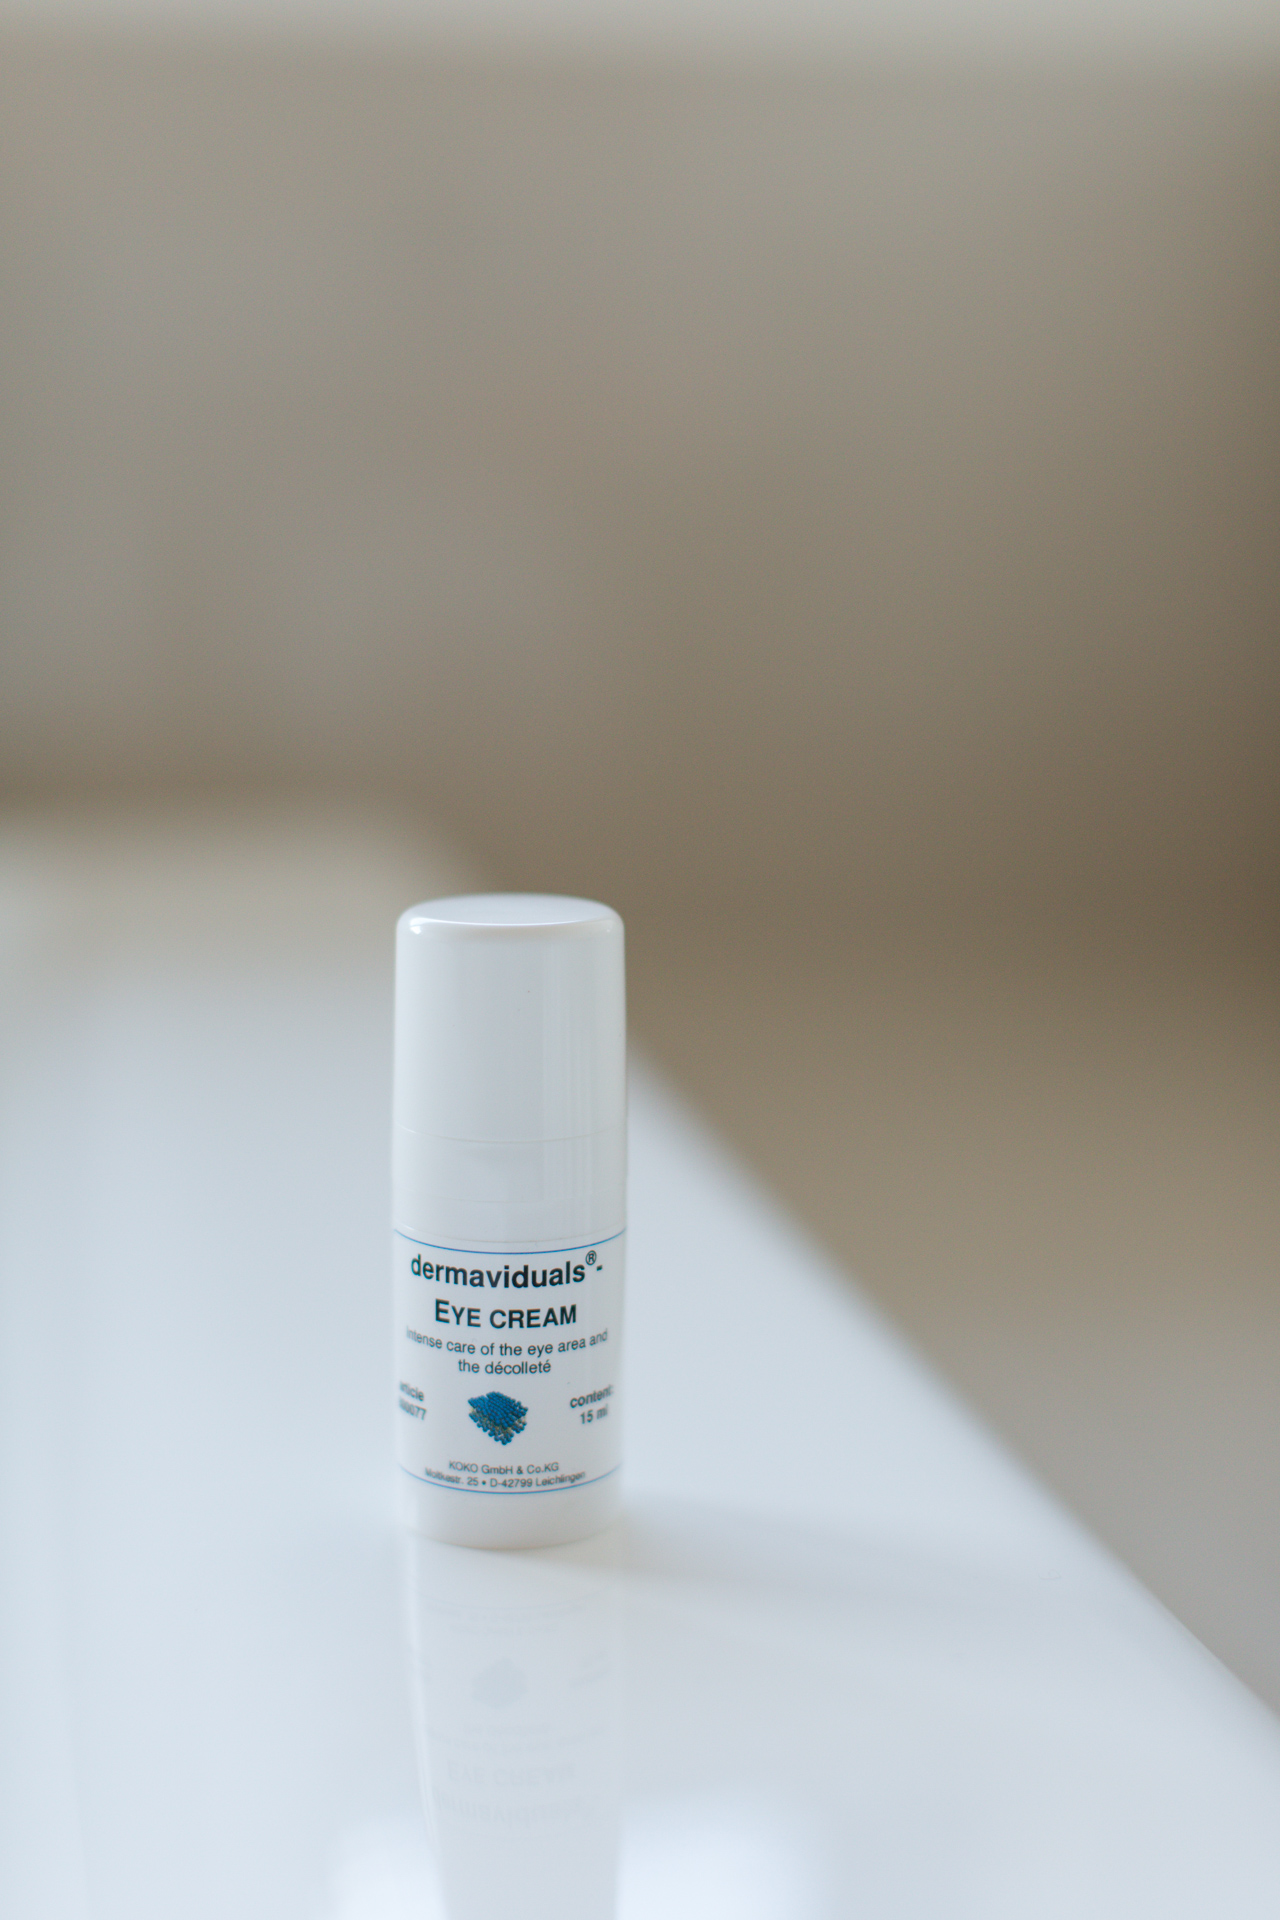 dermaviduals Eye Cream, $75